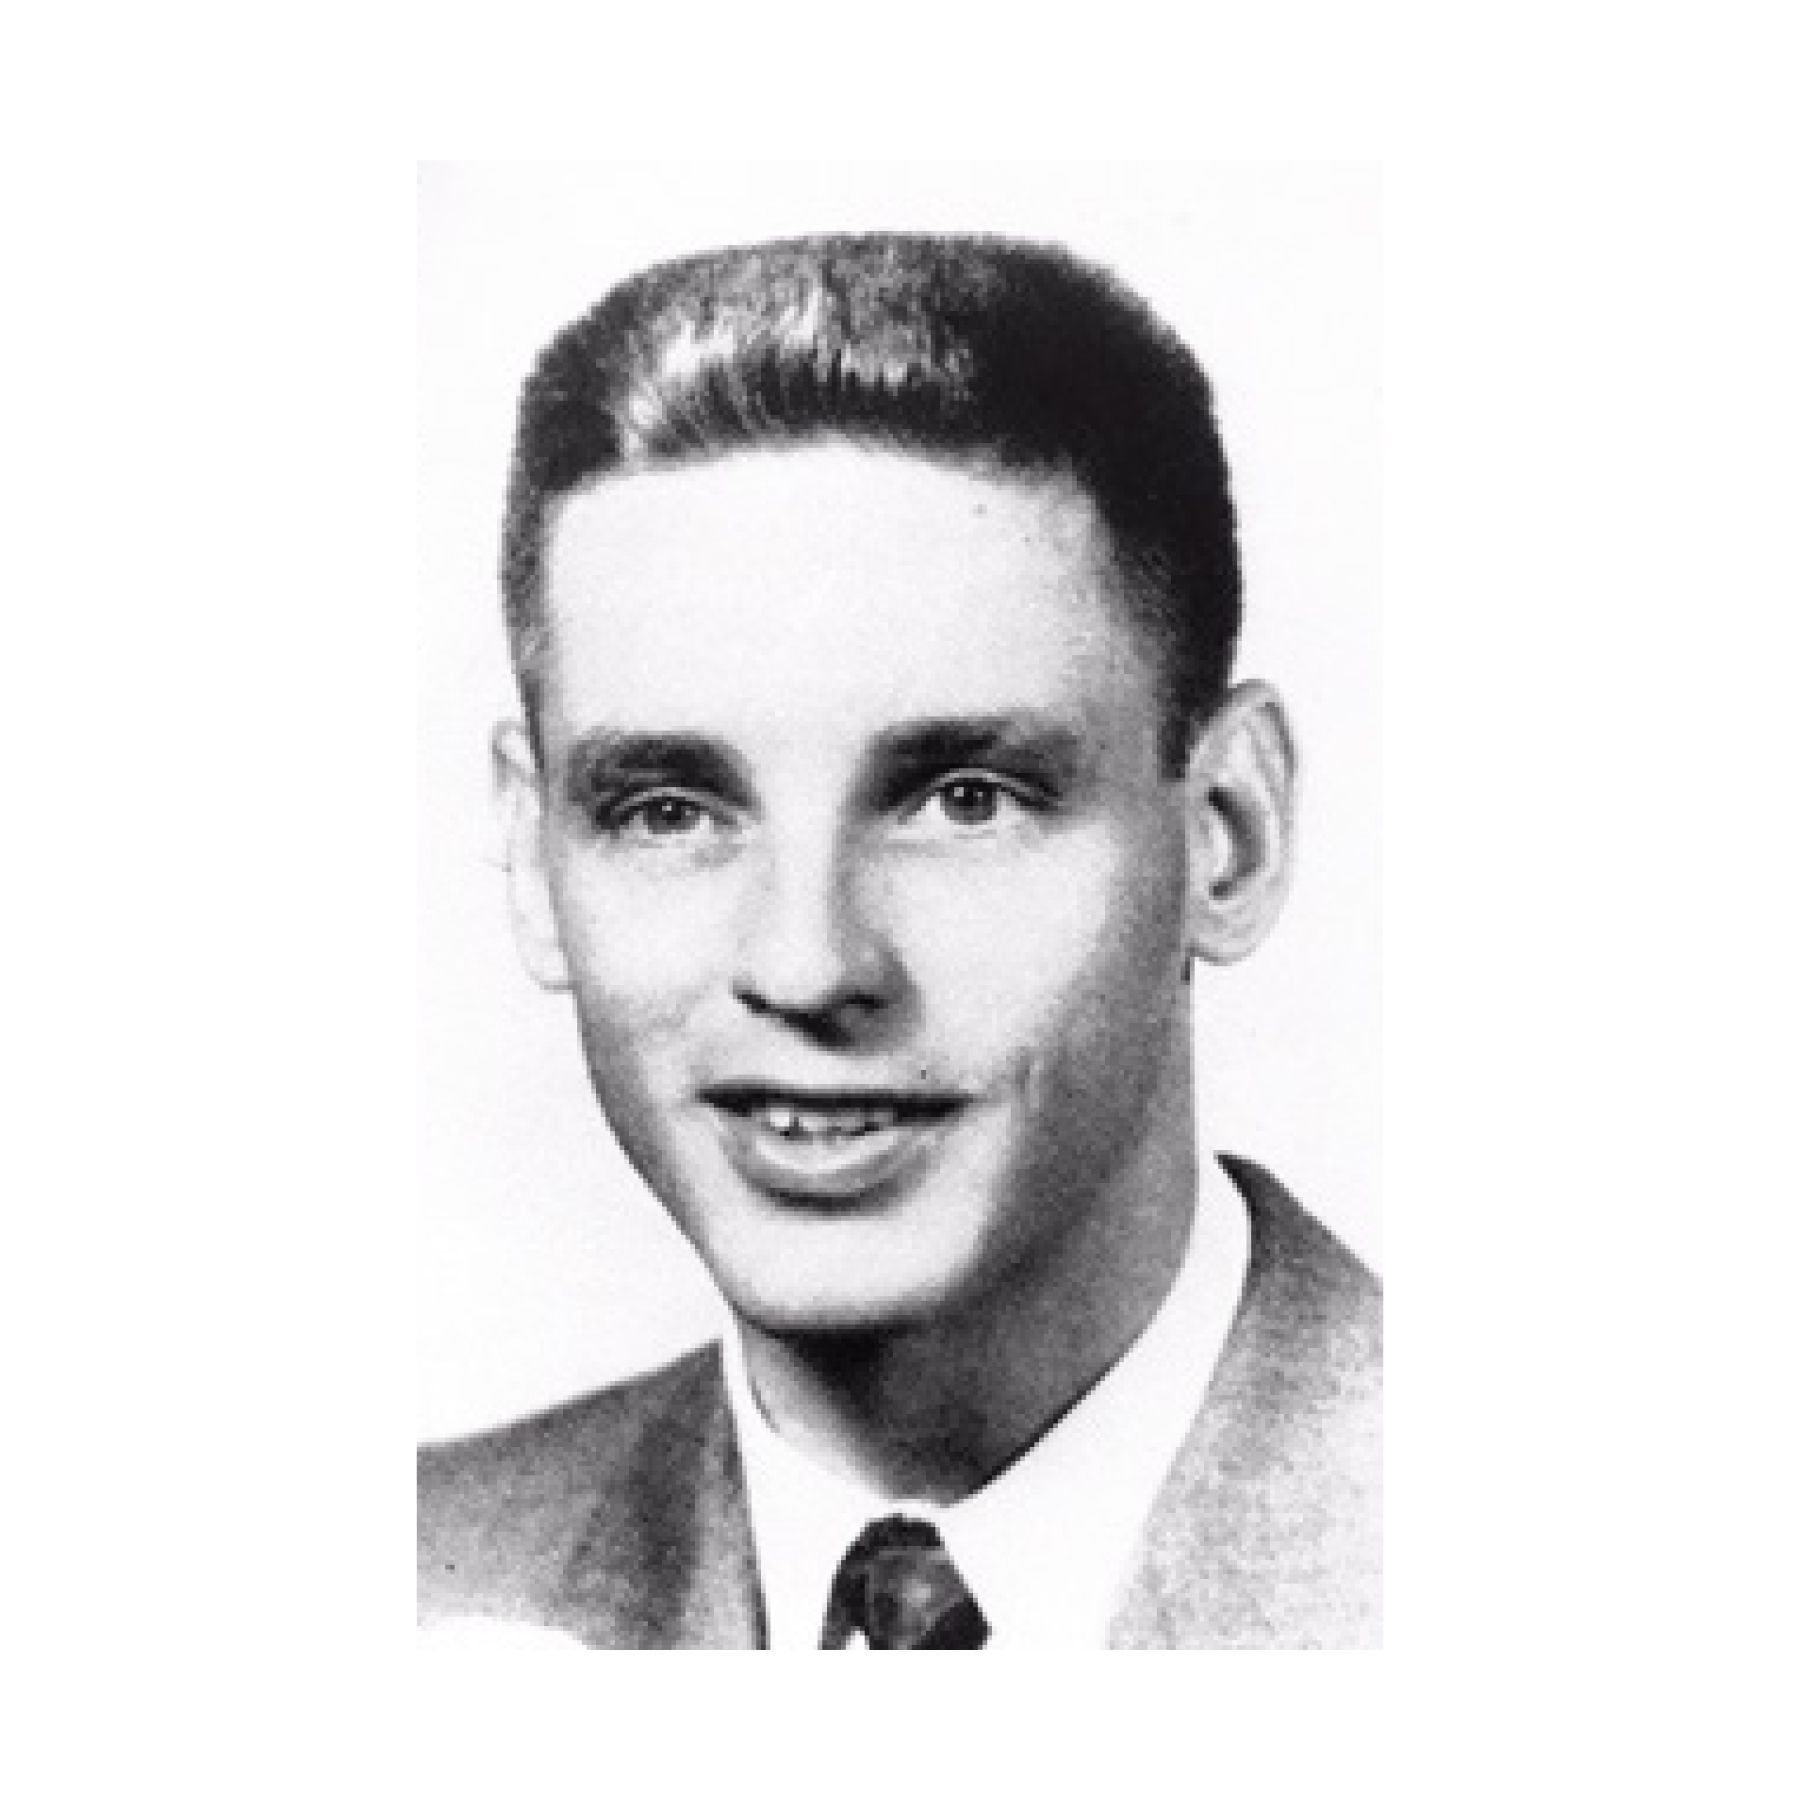 1951 —In a ten-minute decision on the day he graduated from Wartburg College, Norm decided not to go to seminary and instead work as the Director of Public Relations for his alma mater.